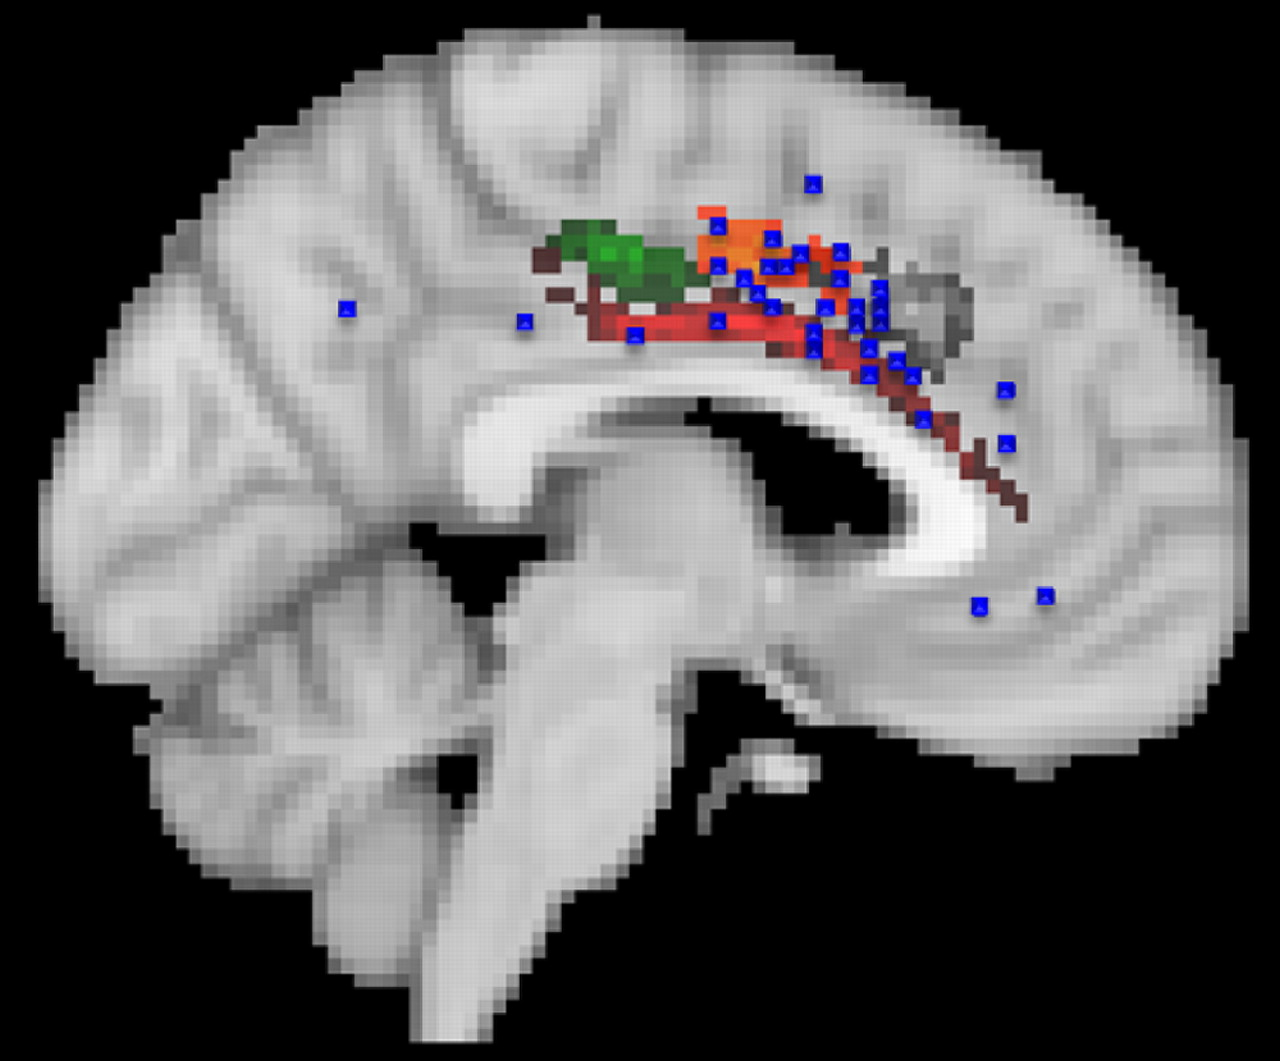 Connectivity Based Parcellation Of Human Cingulate Cortex And Its